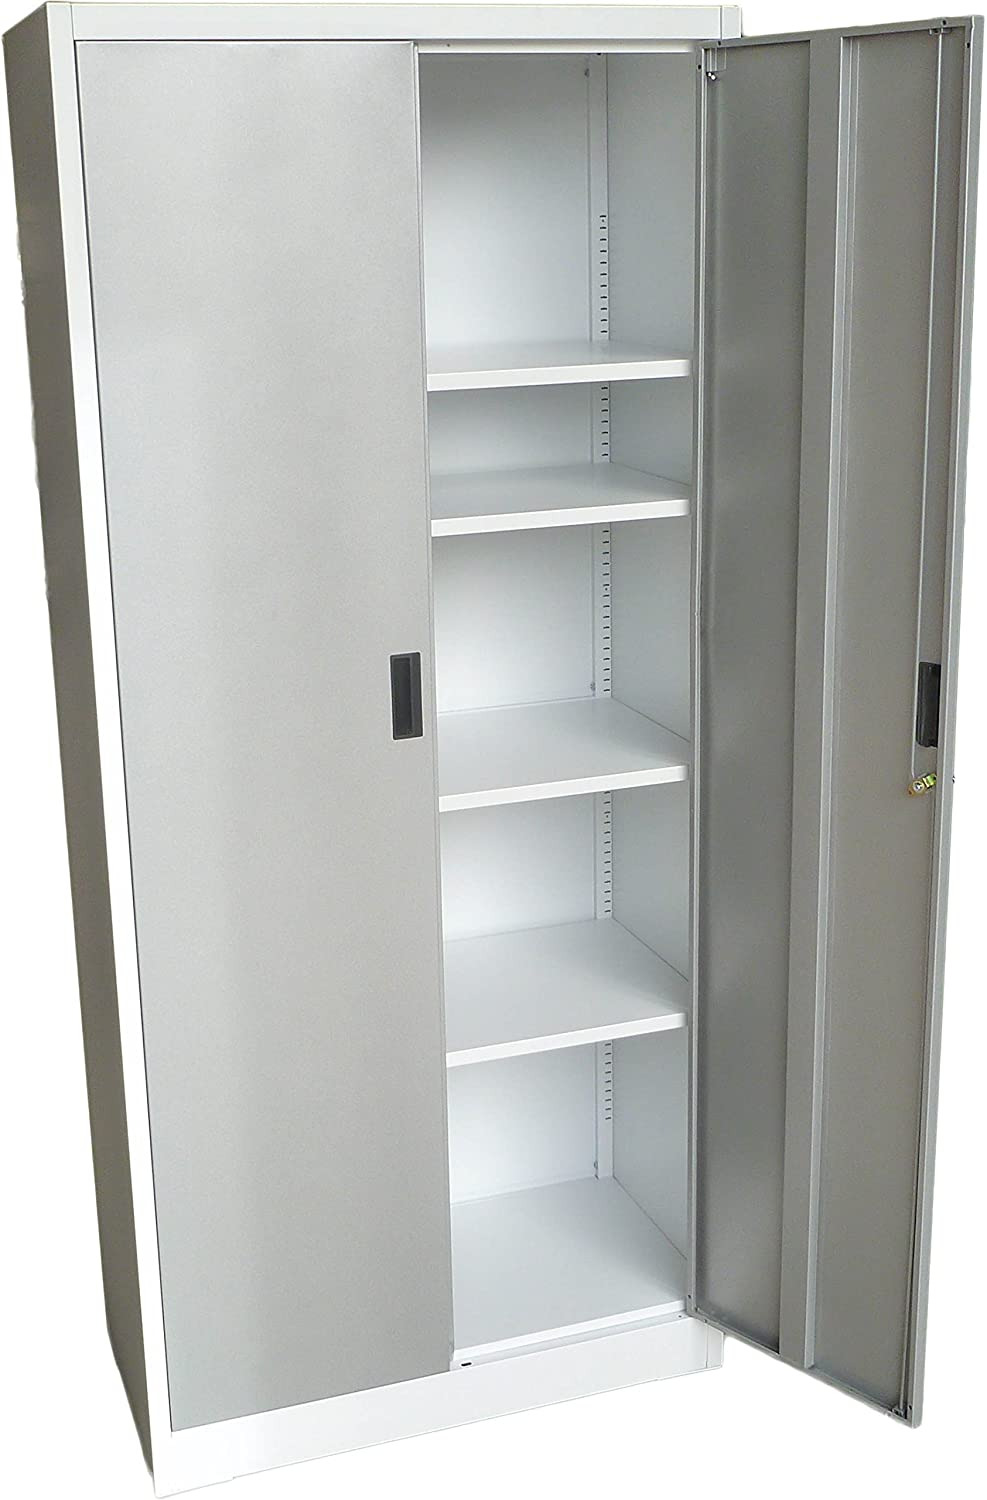 """Plastic Storage Cabinets with Doors Unique Fedmax Metal Storage Cabinet 71"""" Tall Lockable Doors and Adjustable Shelves 70 86"""" Tall X 31 5"""" W X 15 75"""" D Great Steel Locker for Garage Kitchen"""